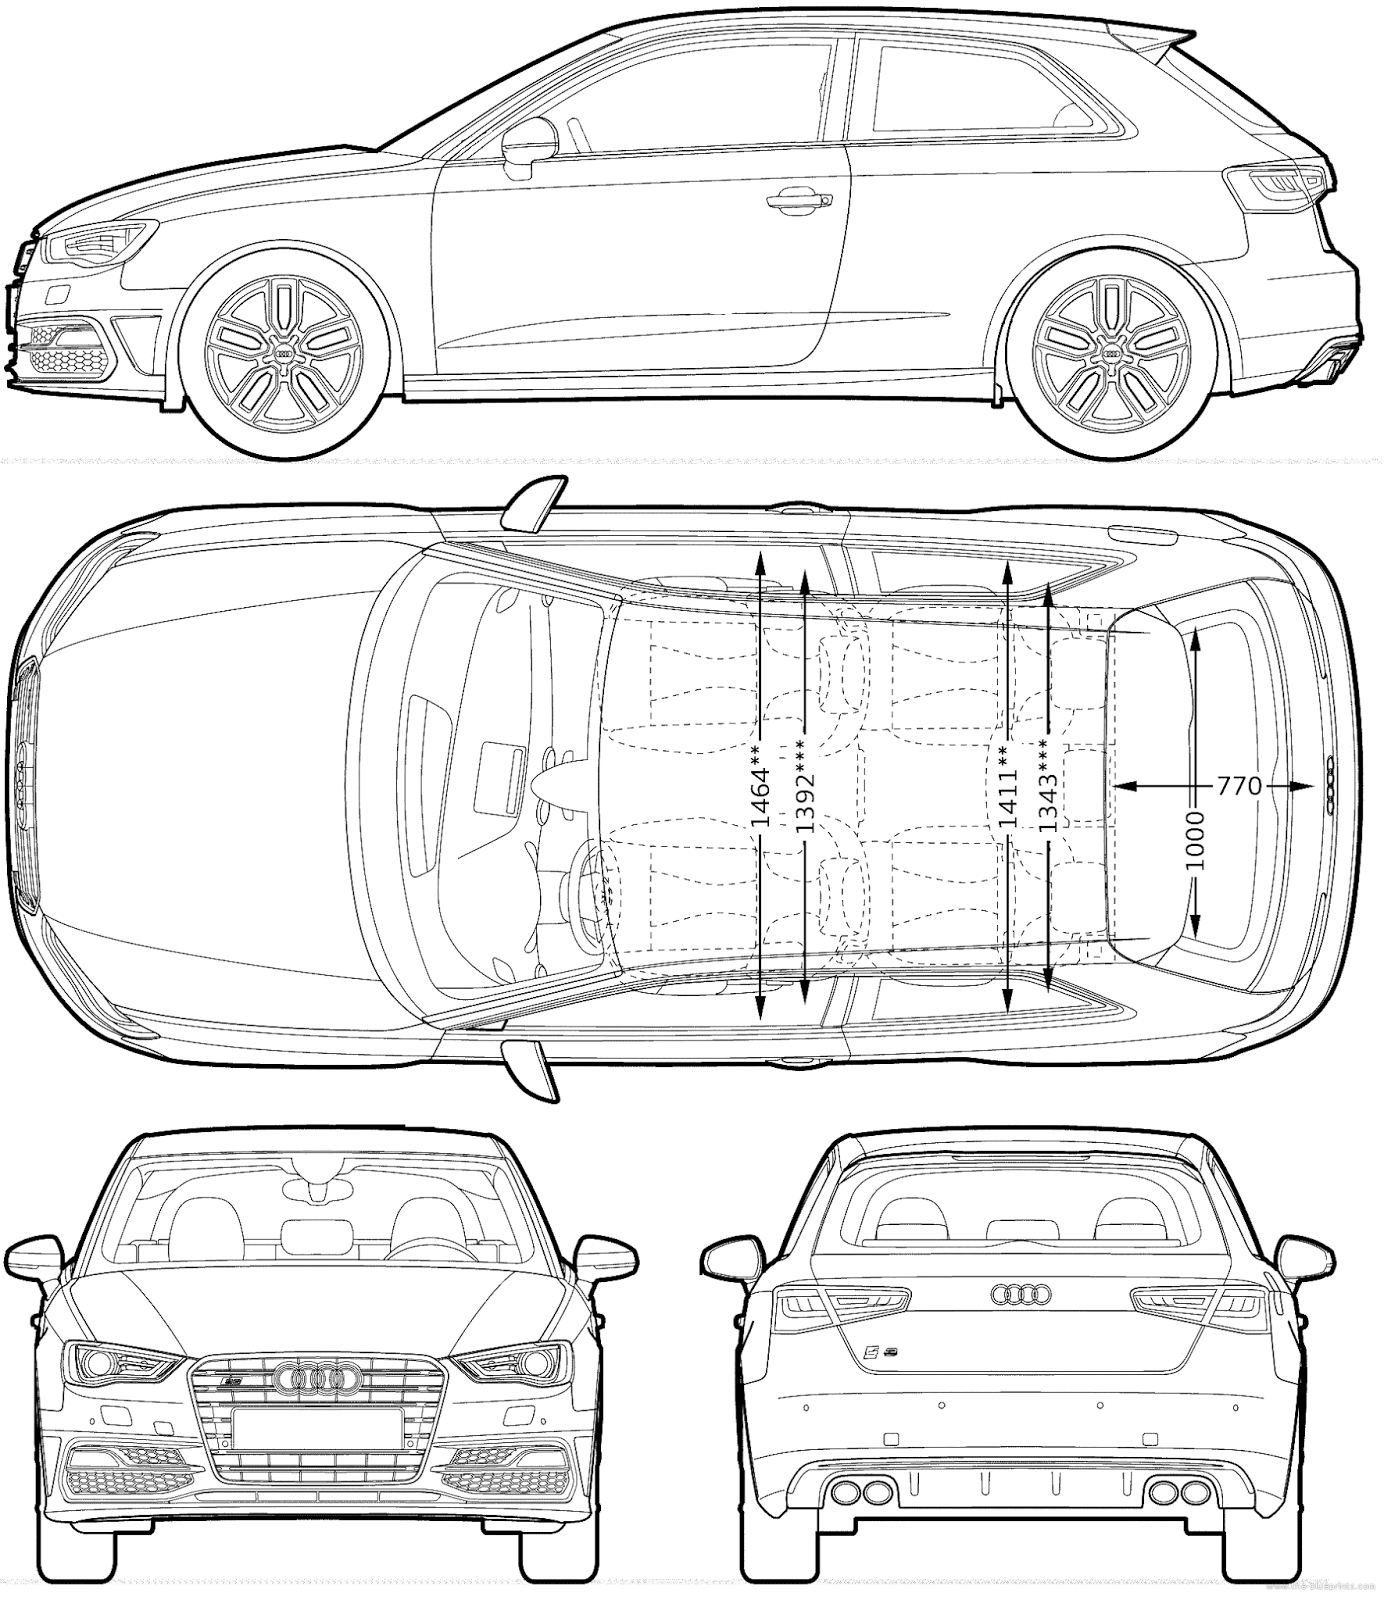 Audi S3 Blueprints Pinterest Audi Audi A3 And Cars